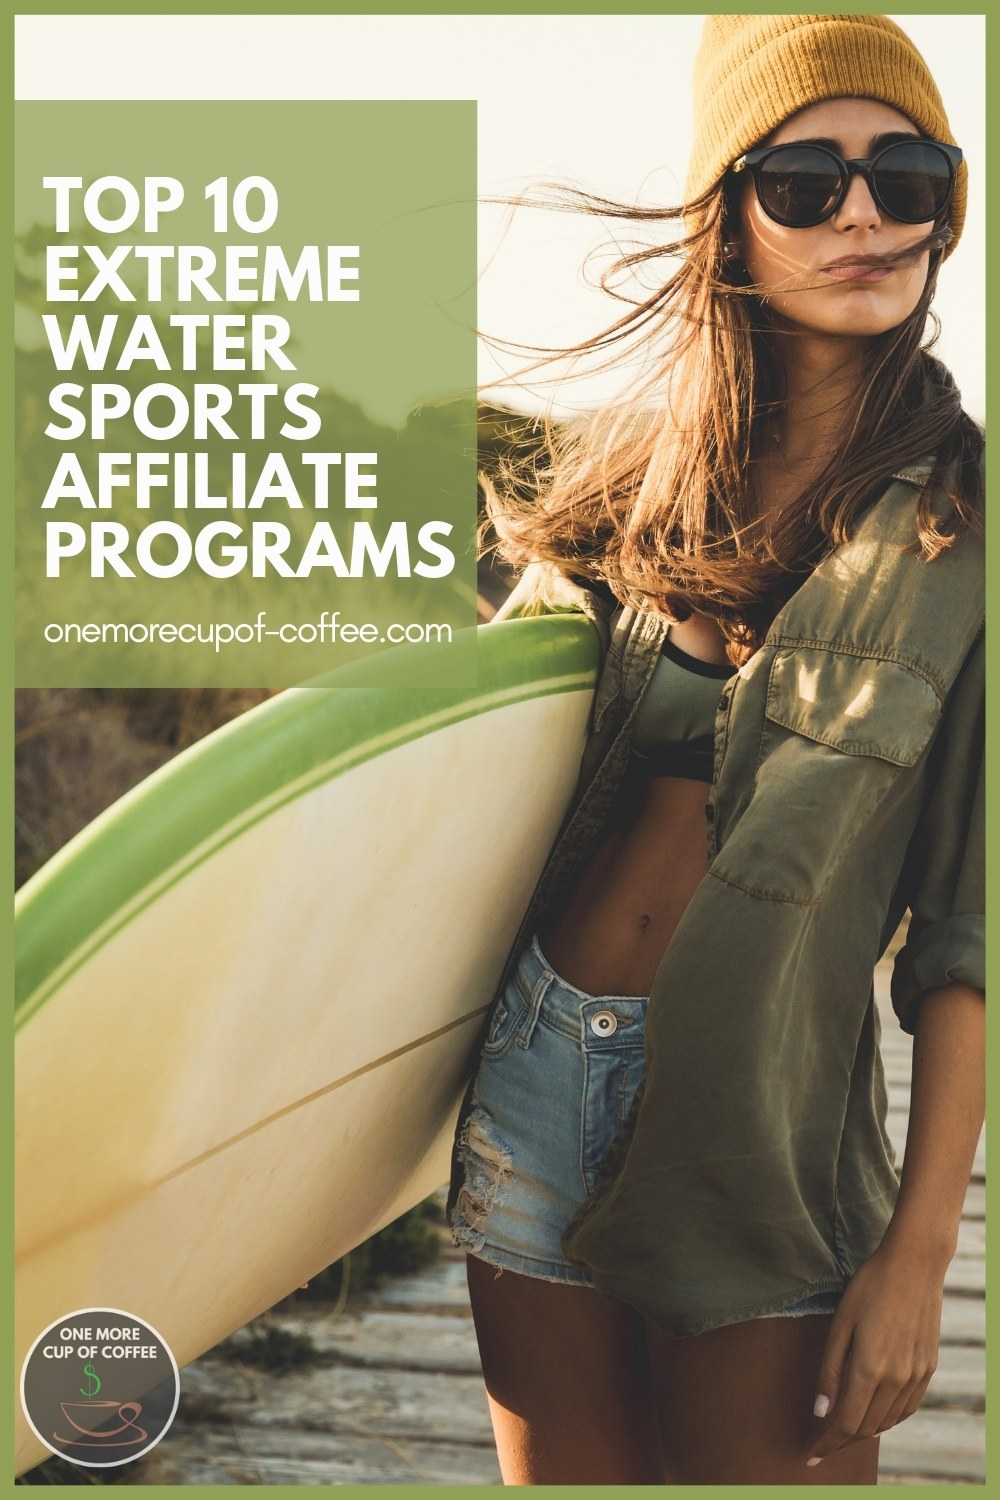 """blond woman with sunglasses carrying here surfboard, with text overlay """"Top 10 Extreme Water Sports Affiliate Programs"""""""